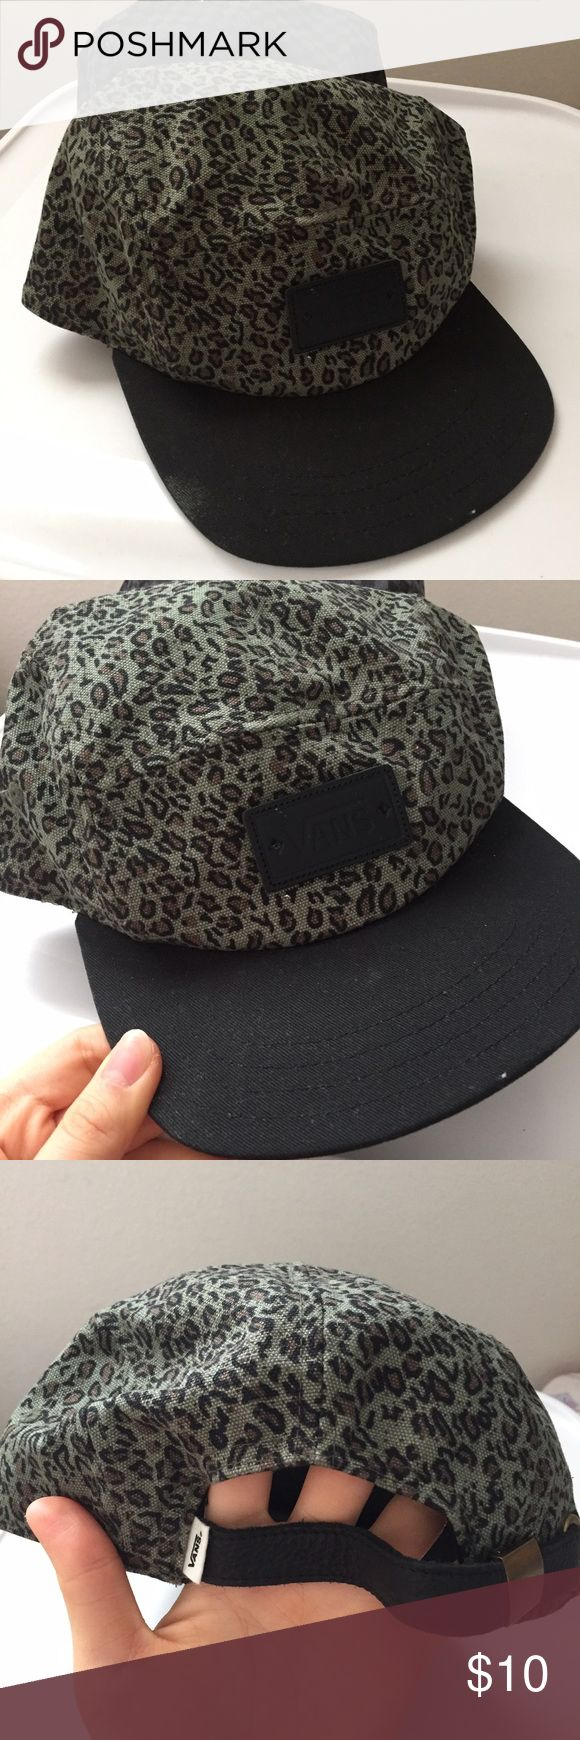 Green leopard vans semi-snapback hat Green leopard vans semi-snapback hat, never really been worn on any occasion so it is still in excellent condition. #hippie #vintage #90s #skateboarder #hats #blackhat #vans #leopard #green Vans Other